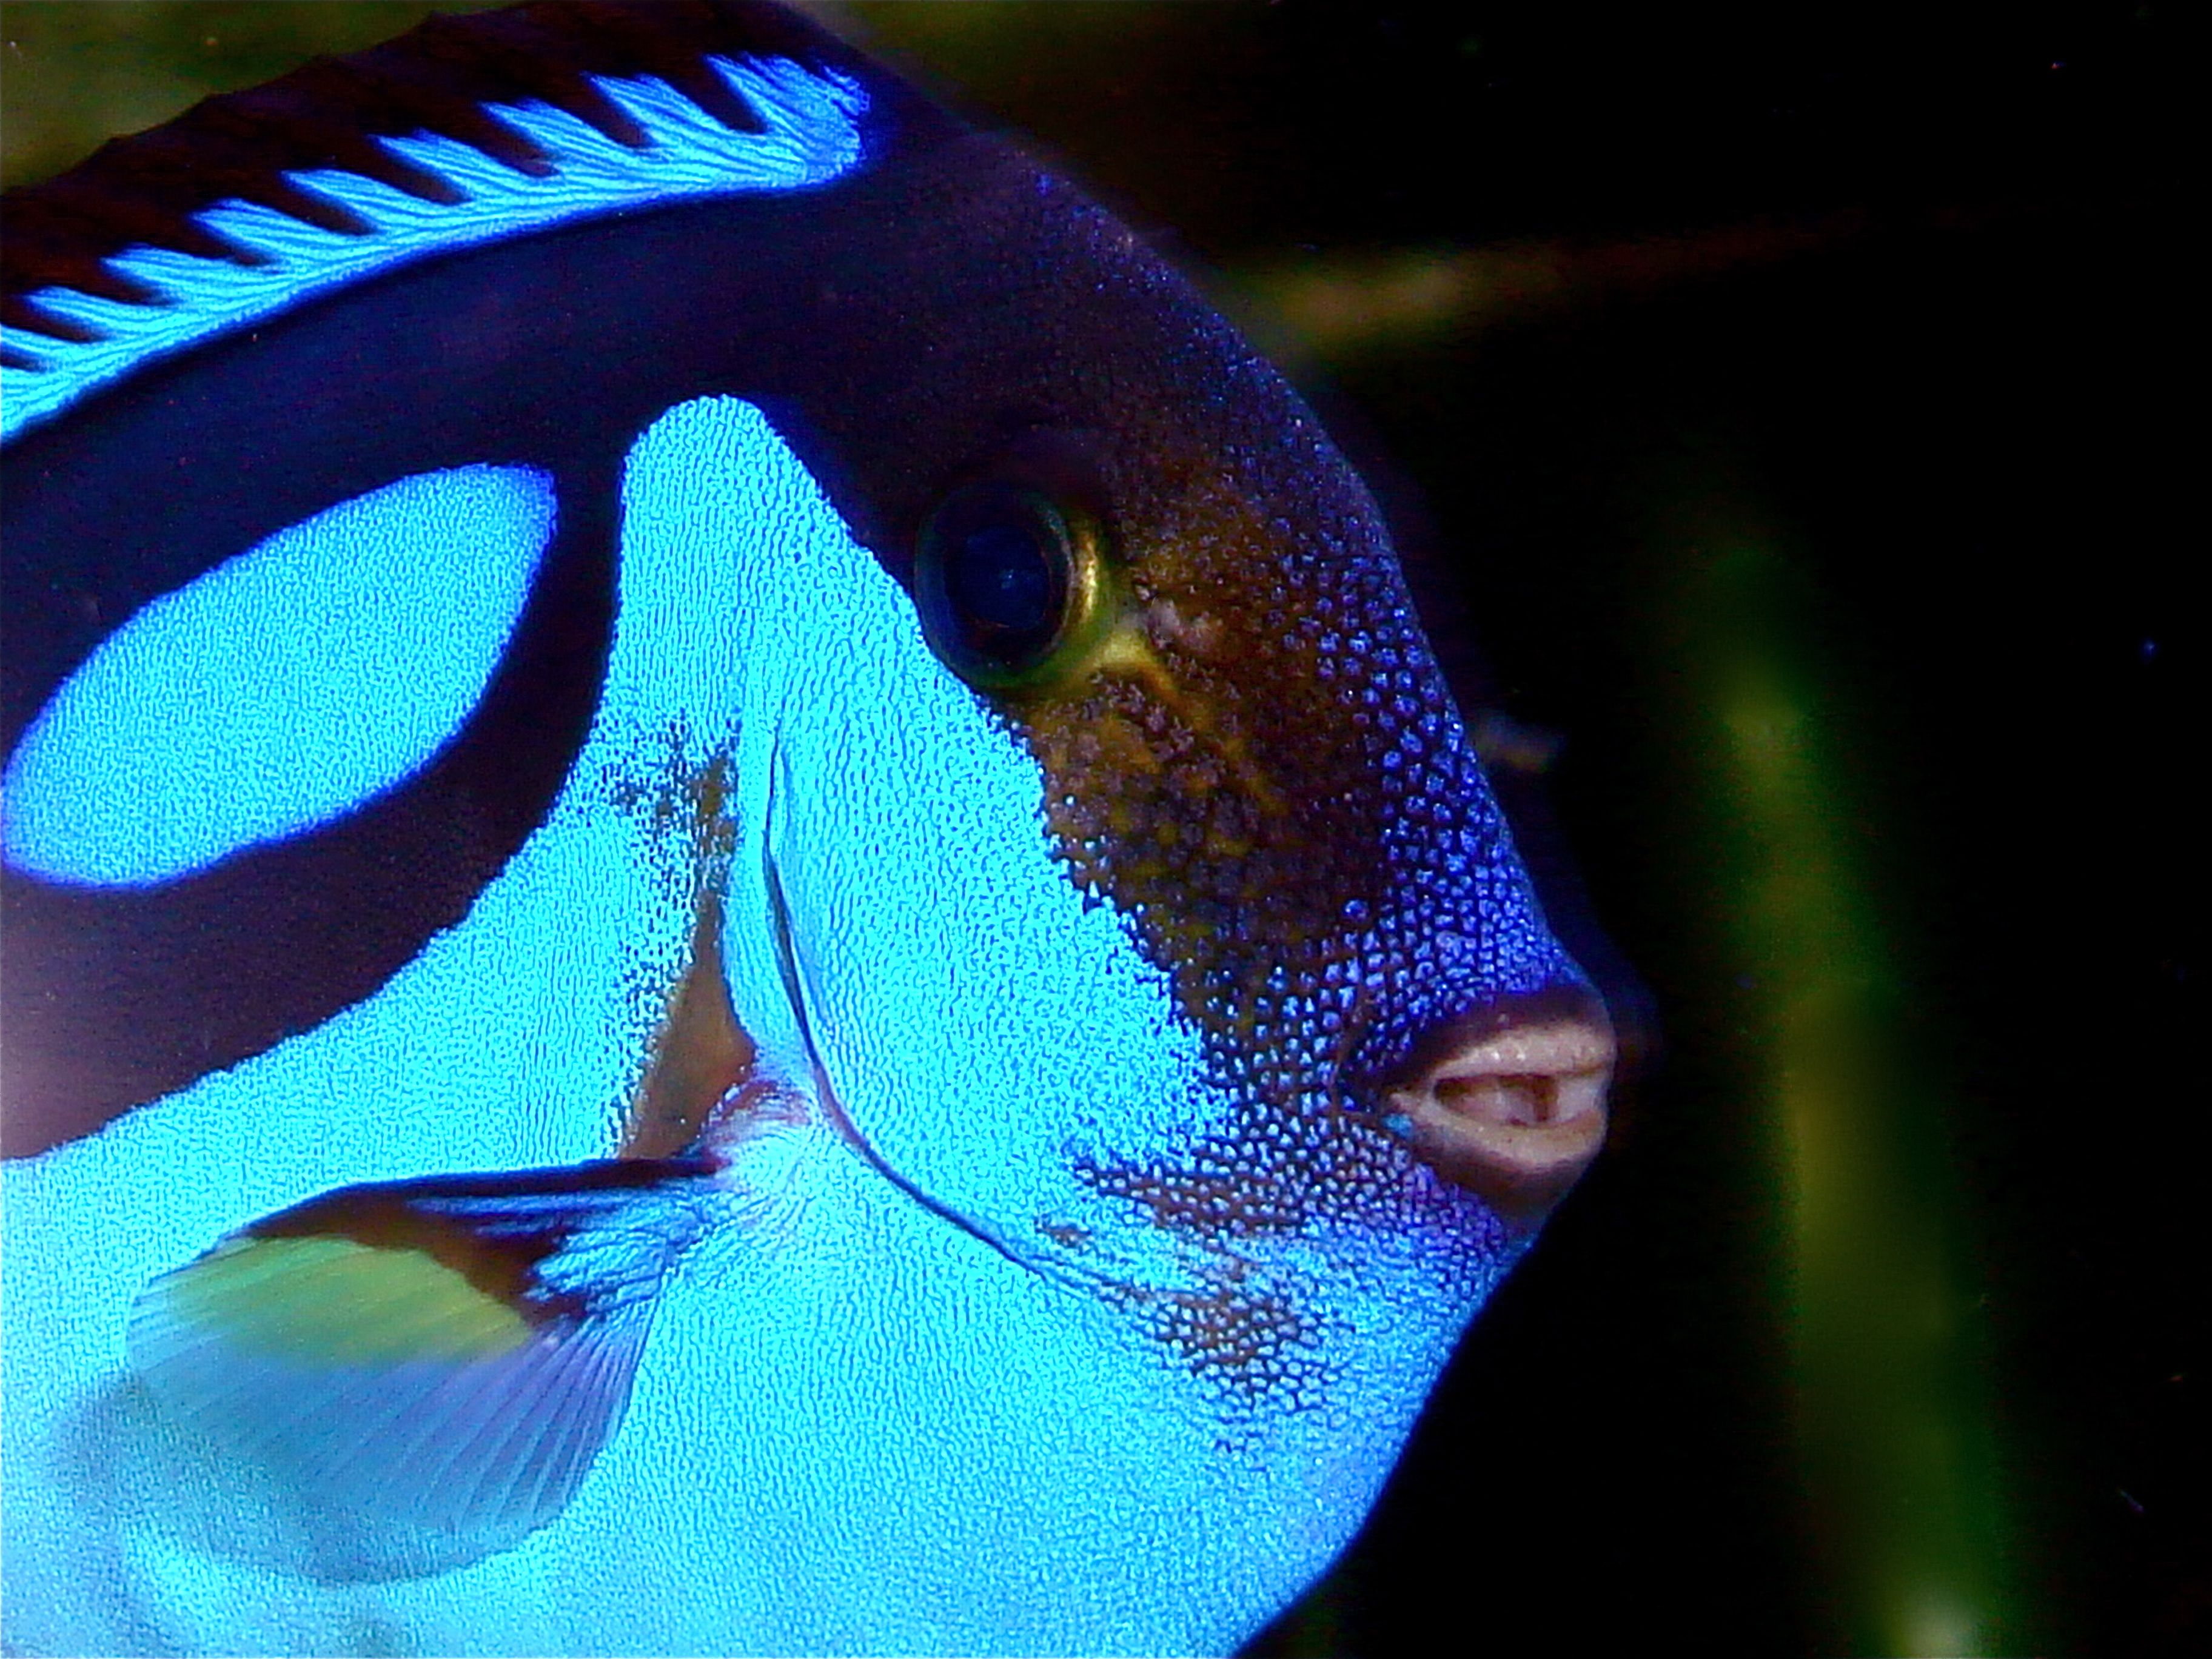 Blue Tang ( Palette Surgeonfish ) Indo-Pacific, 31cm, another pretty face.